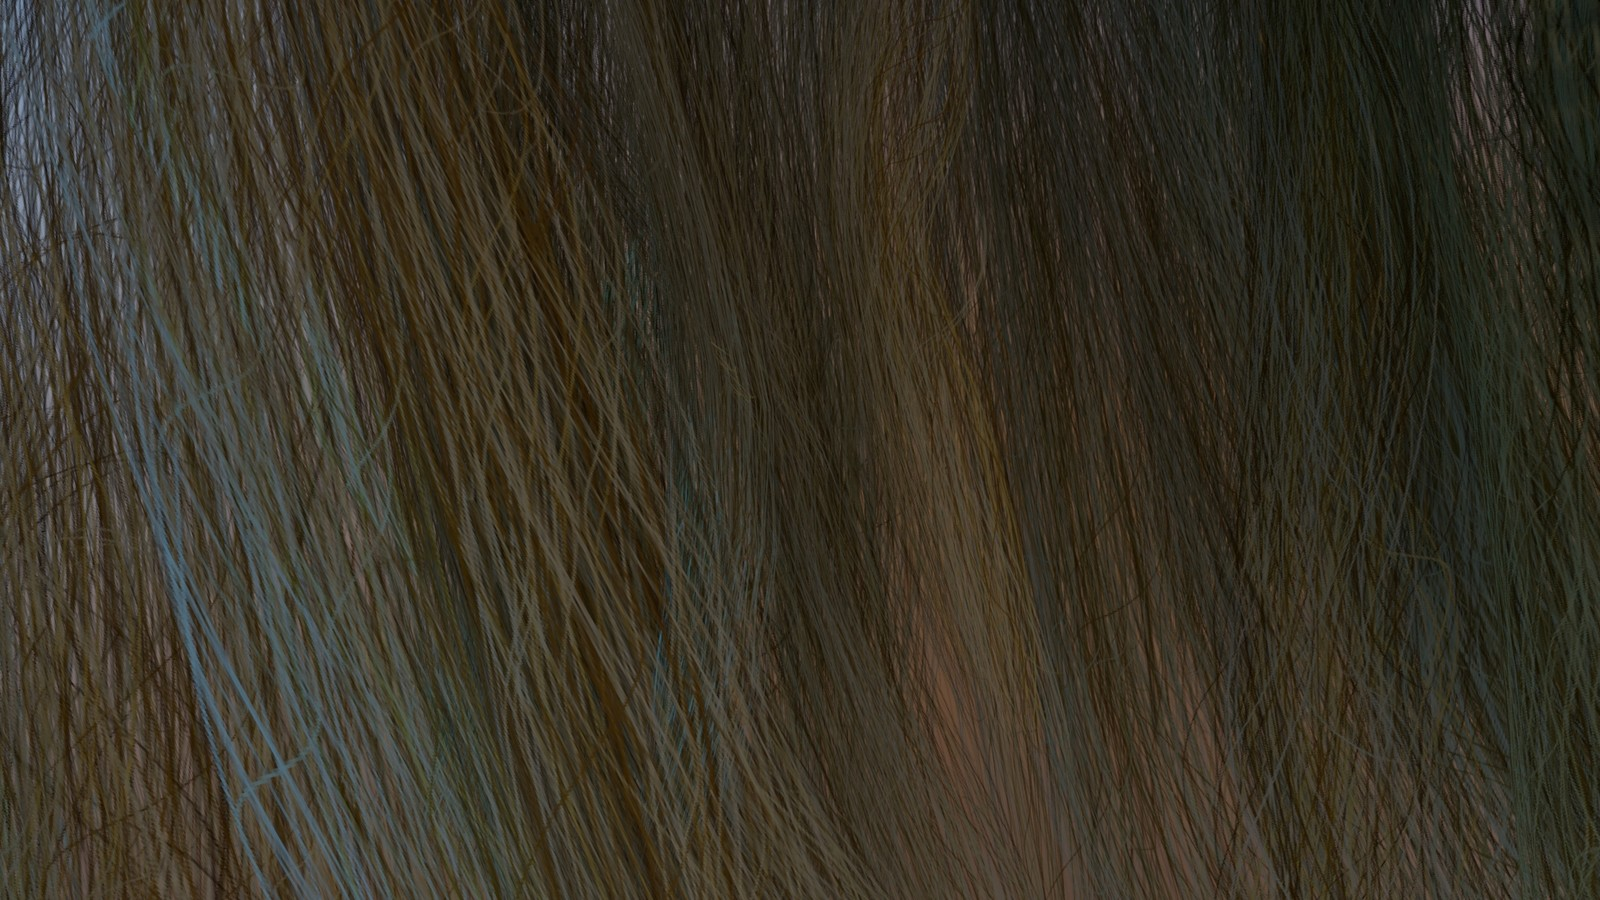 Hair closeup